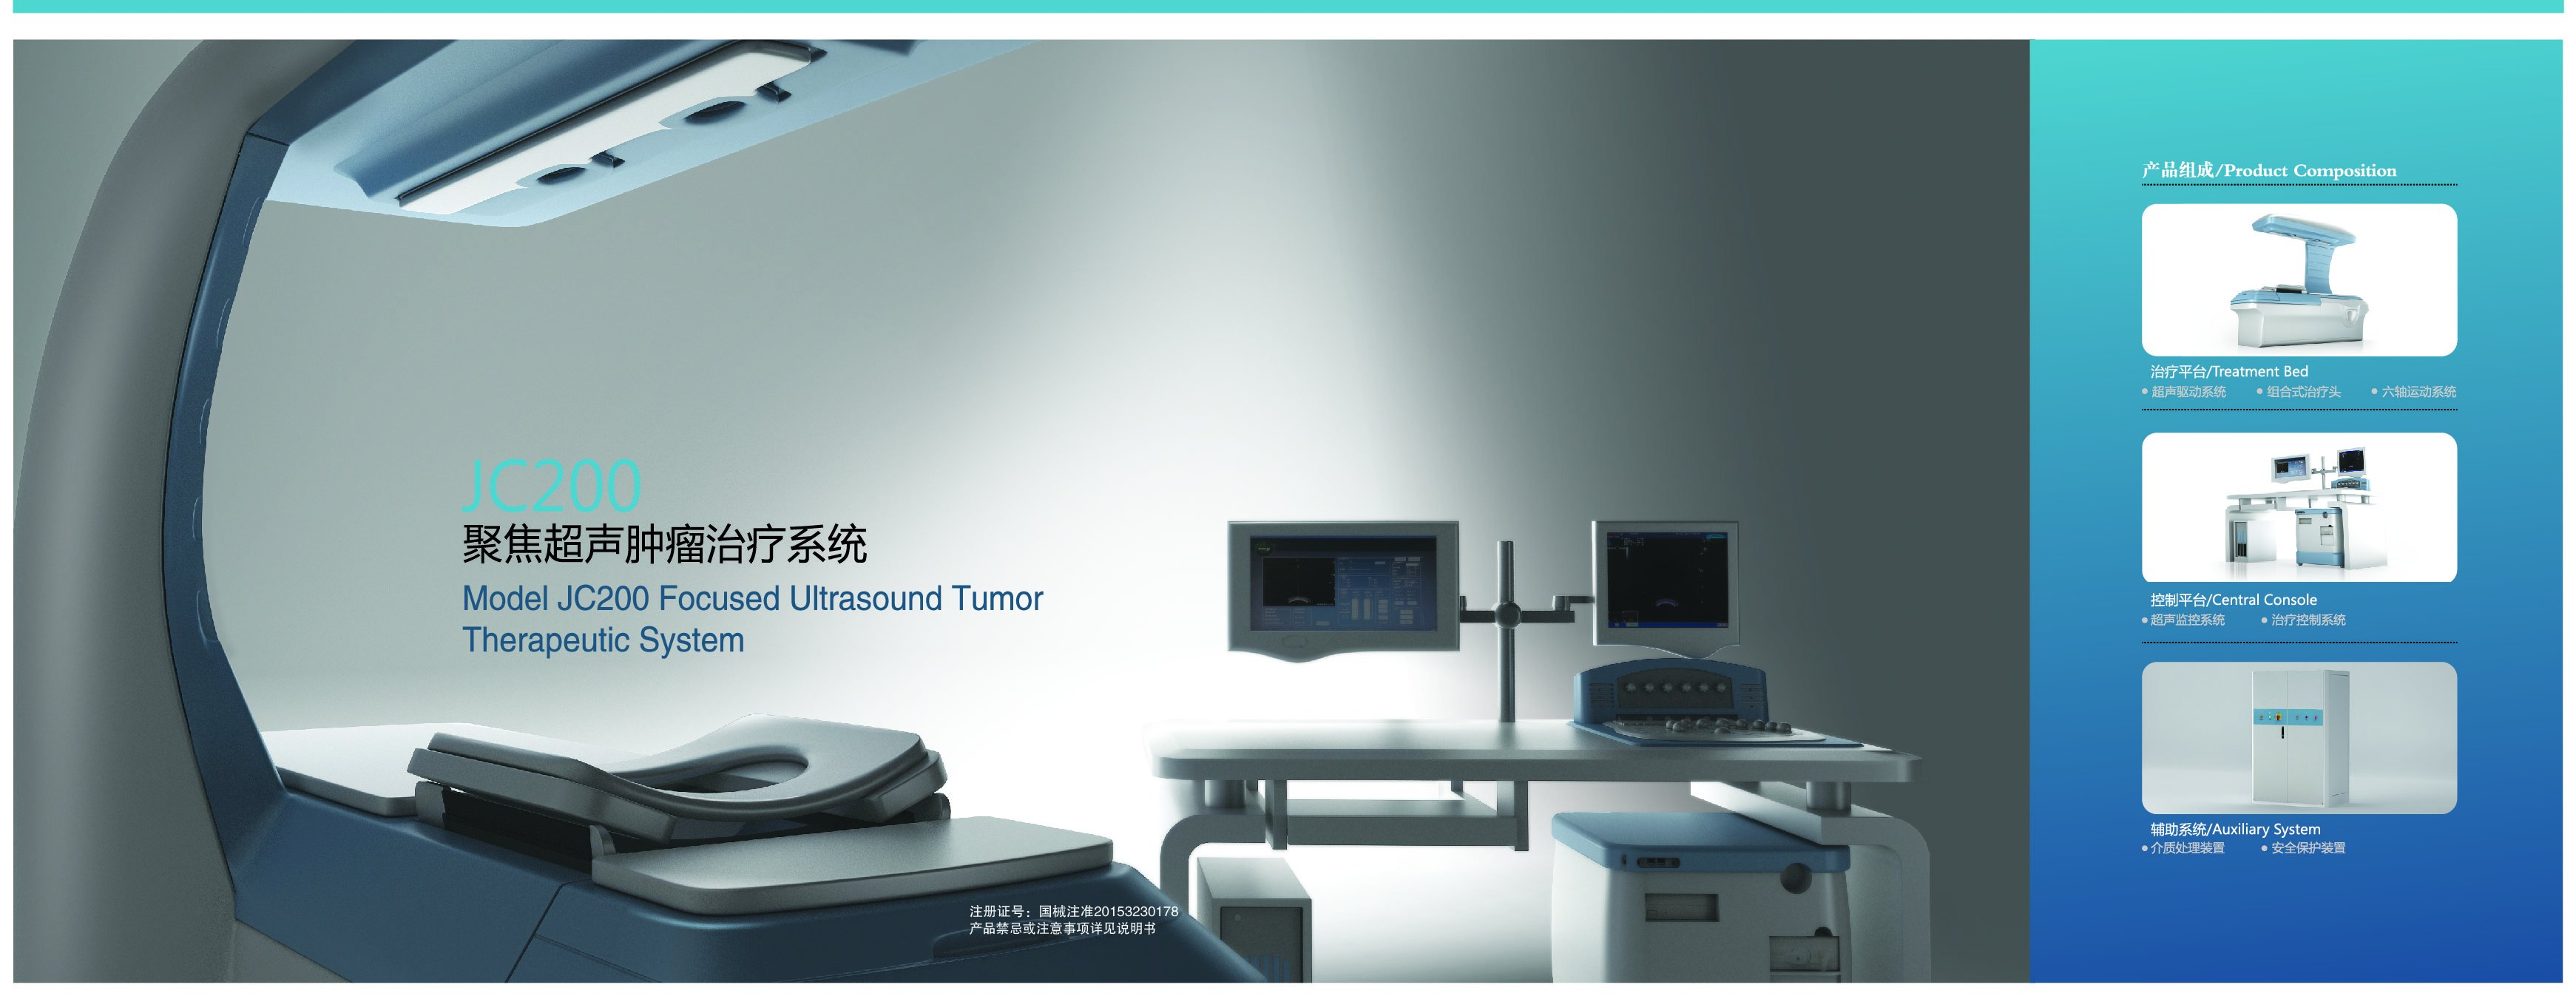 Newest Technology for Cancer Therapy